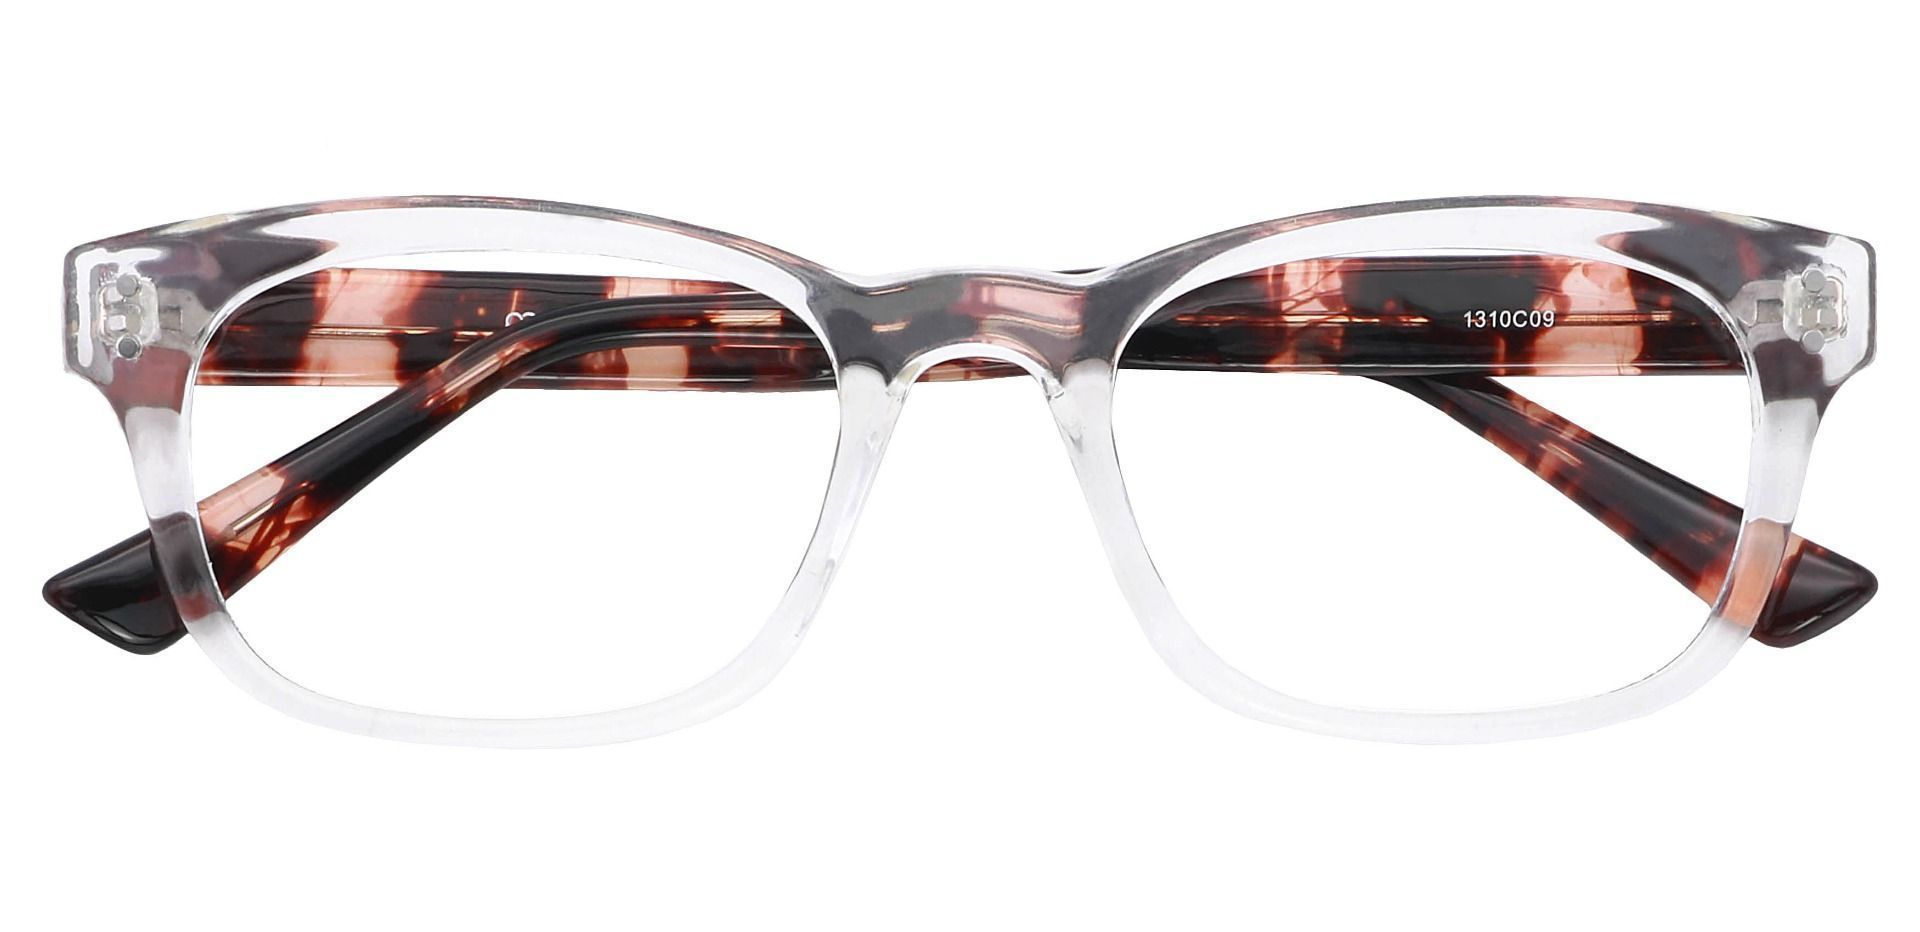 Hanover Oval Prescription Glasses - Clear